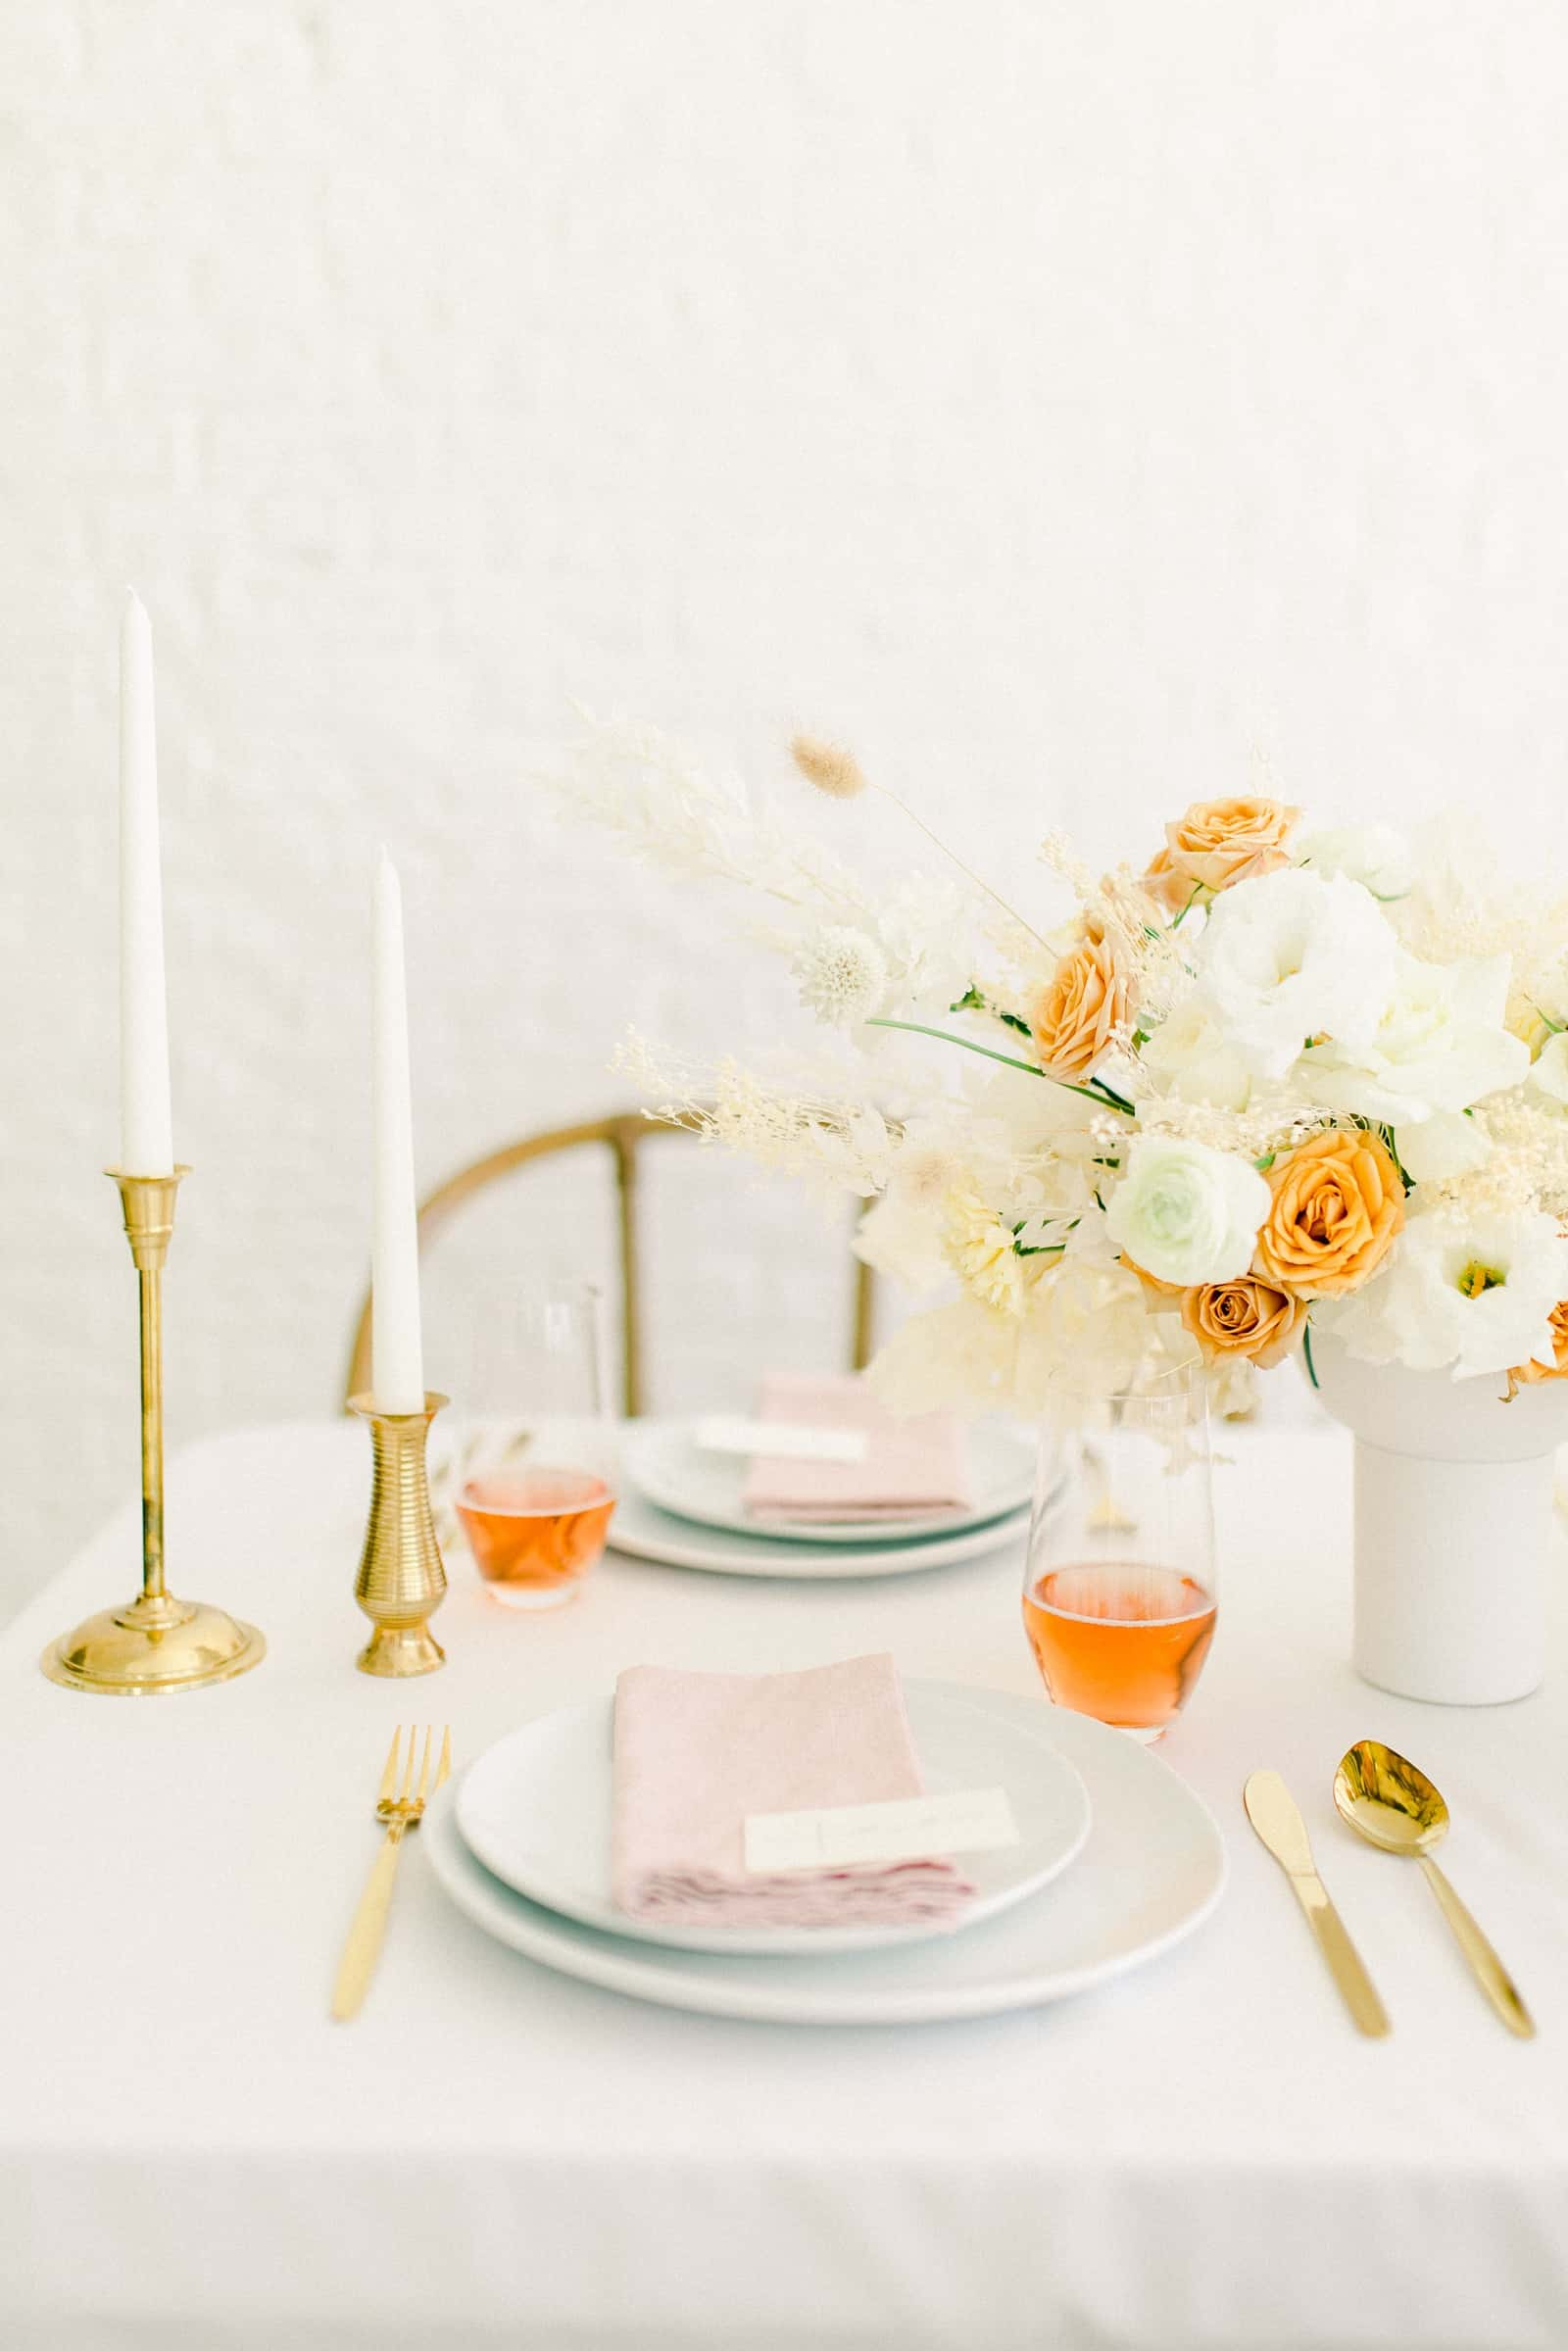 Modern wedding table scape with white and orange flower centerpiece and blush pink napkins